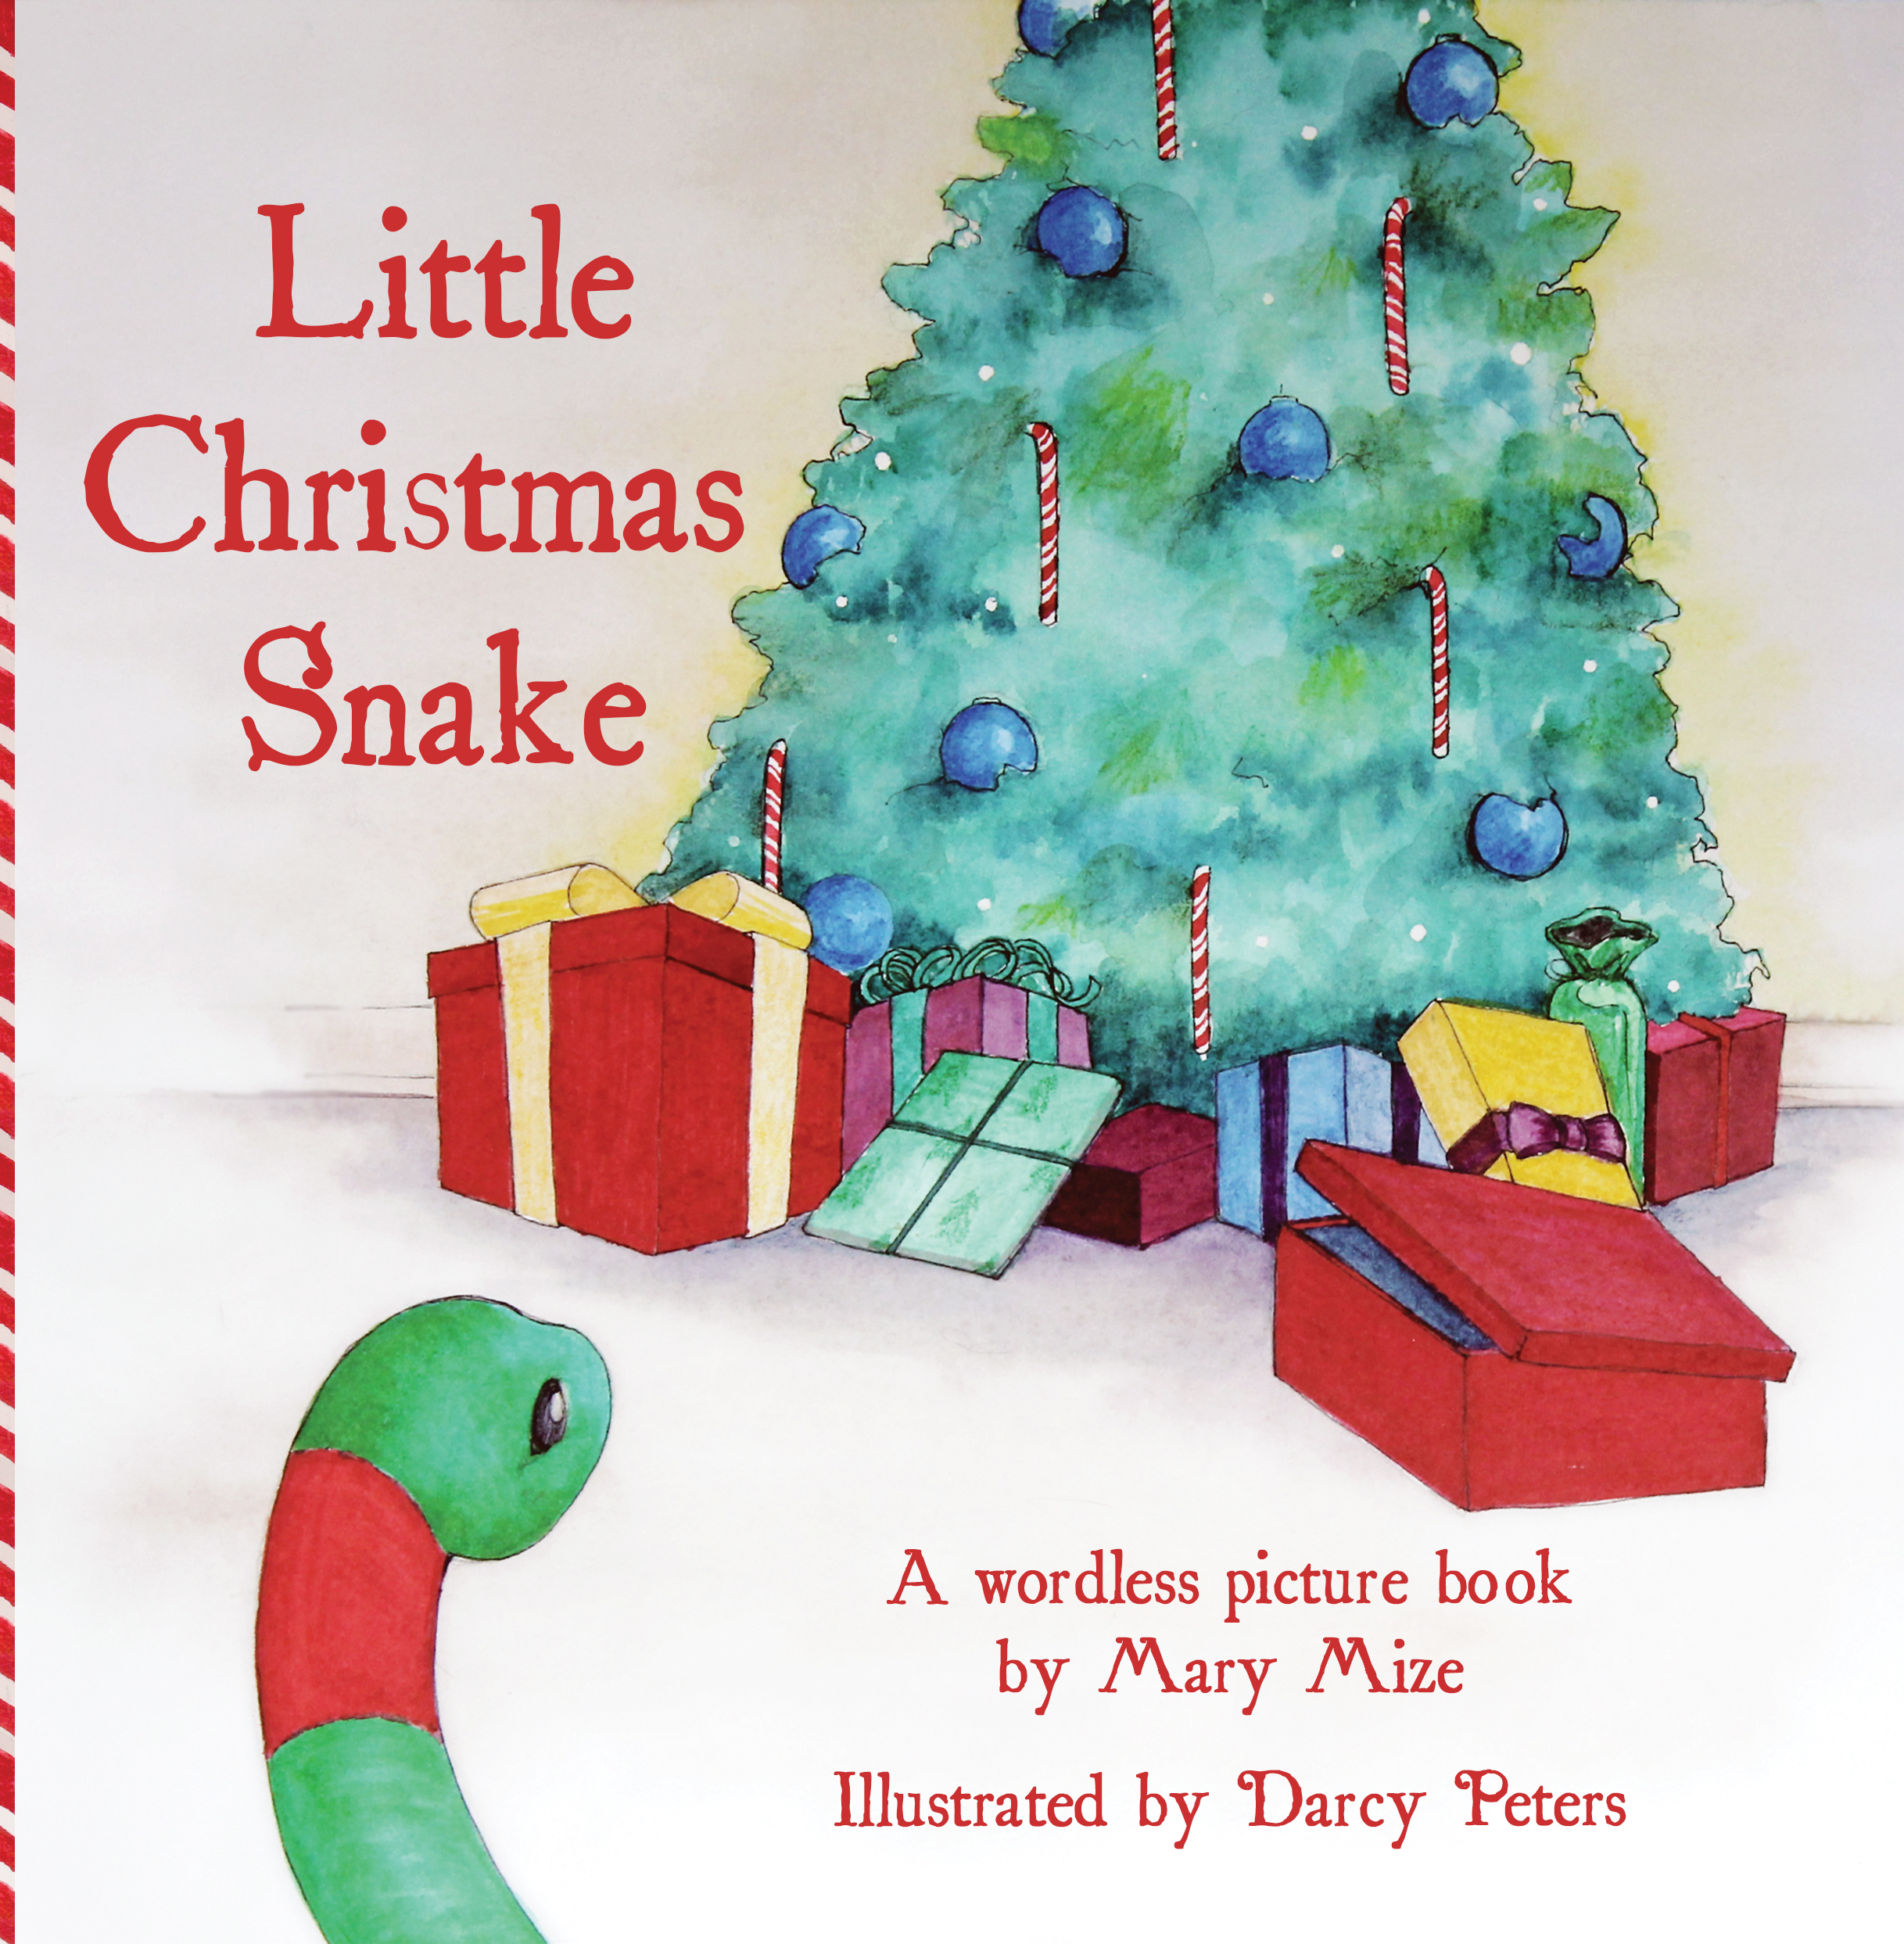 Little Christmas Snake